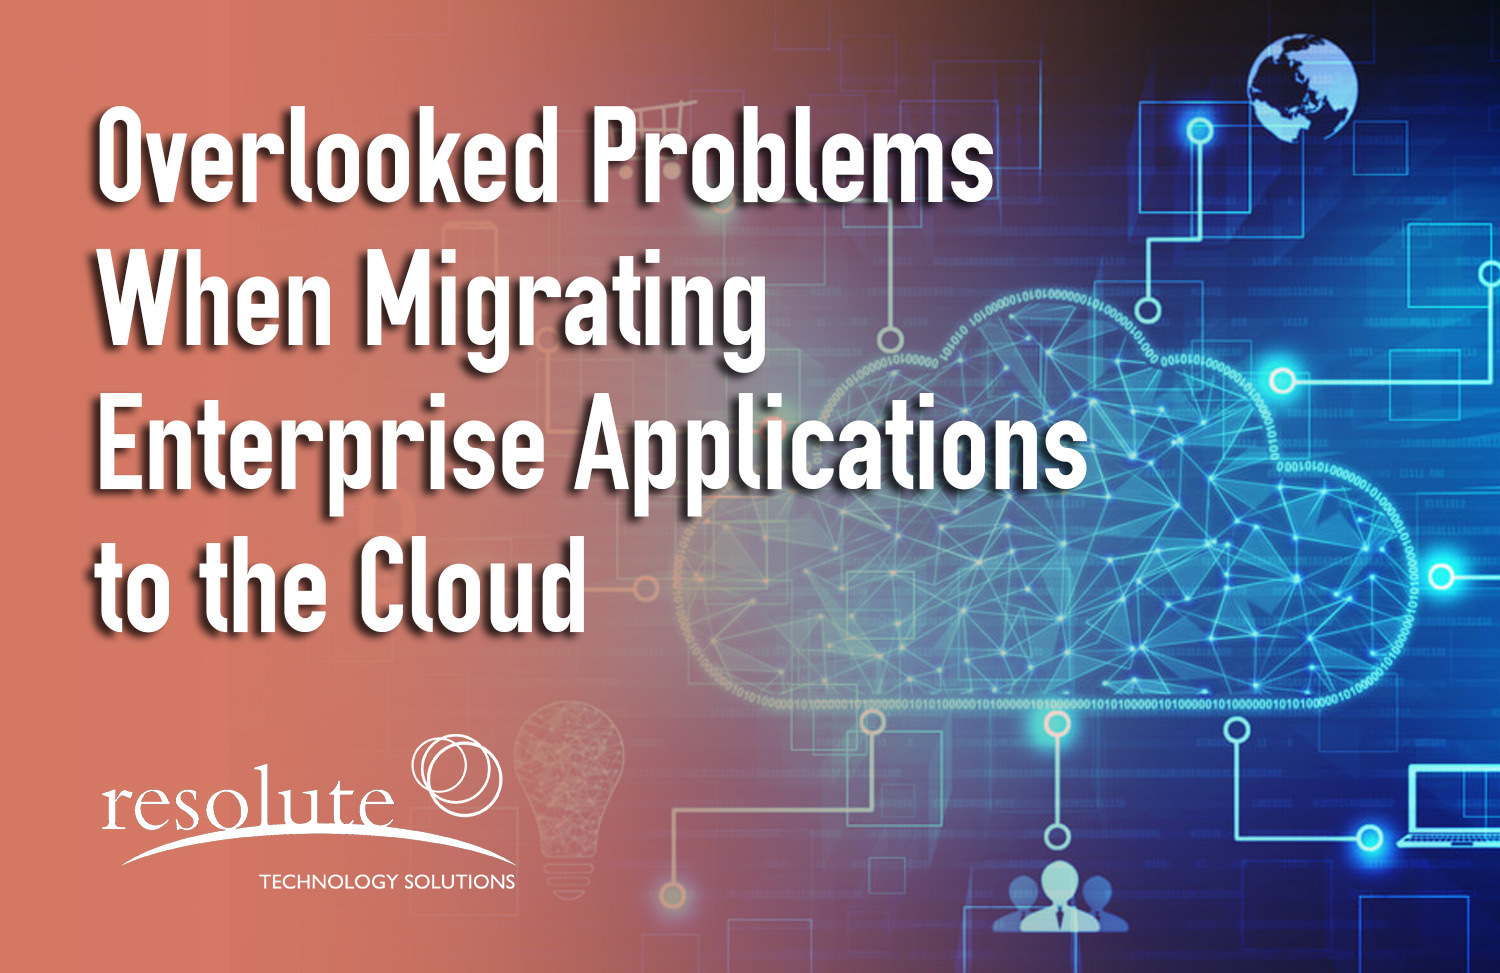 5 Overlooked Problems When Migrating Enterprise Applications to the Cloud